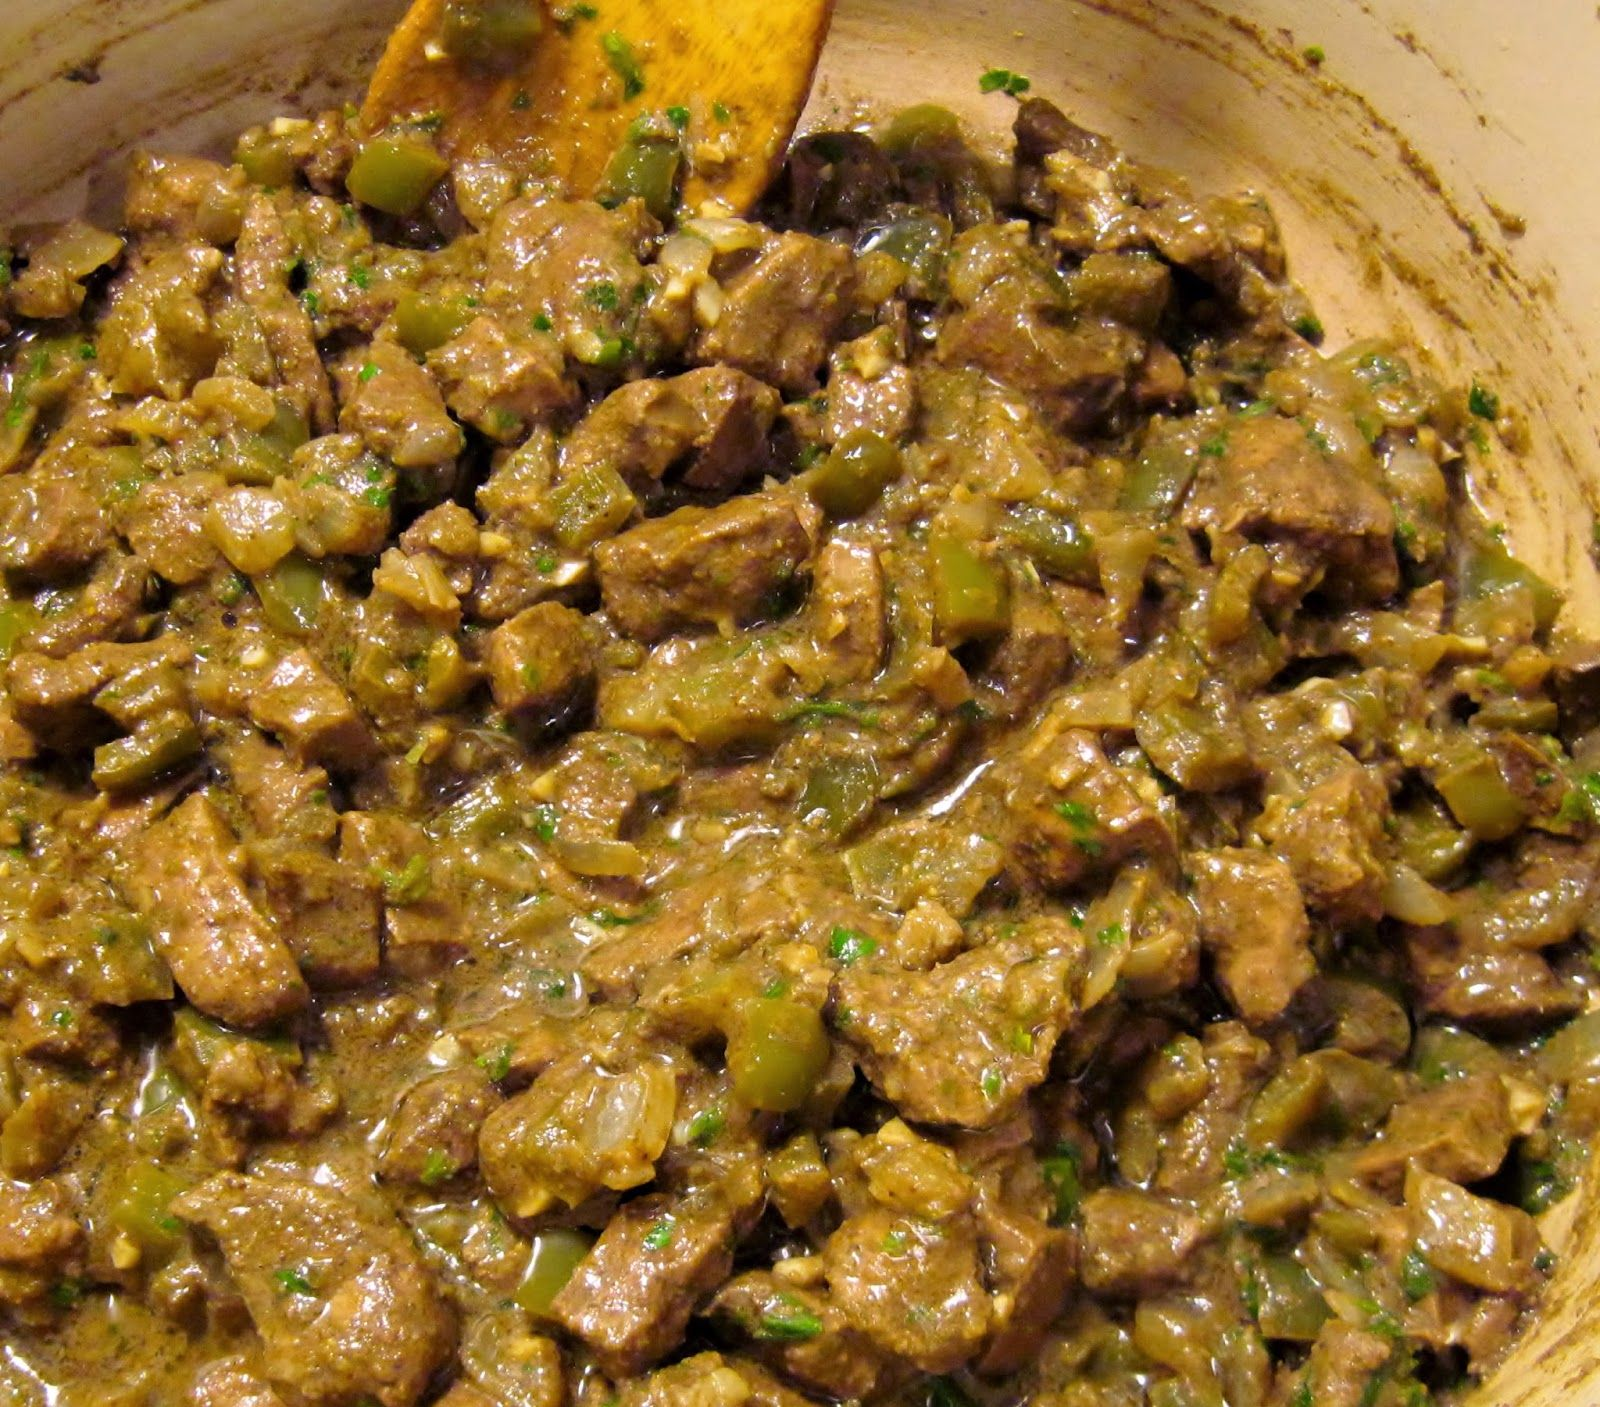 Egyptian style beef liver youll never say no to liver again egyptian style beef liver youll never say no to liver again egyptian recipesegyptian foodarabic recipeschicken forumfinder Gallery